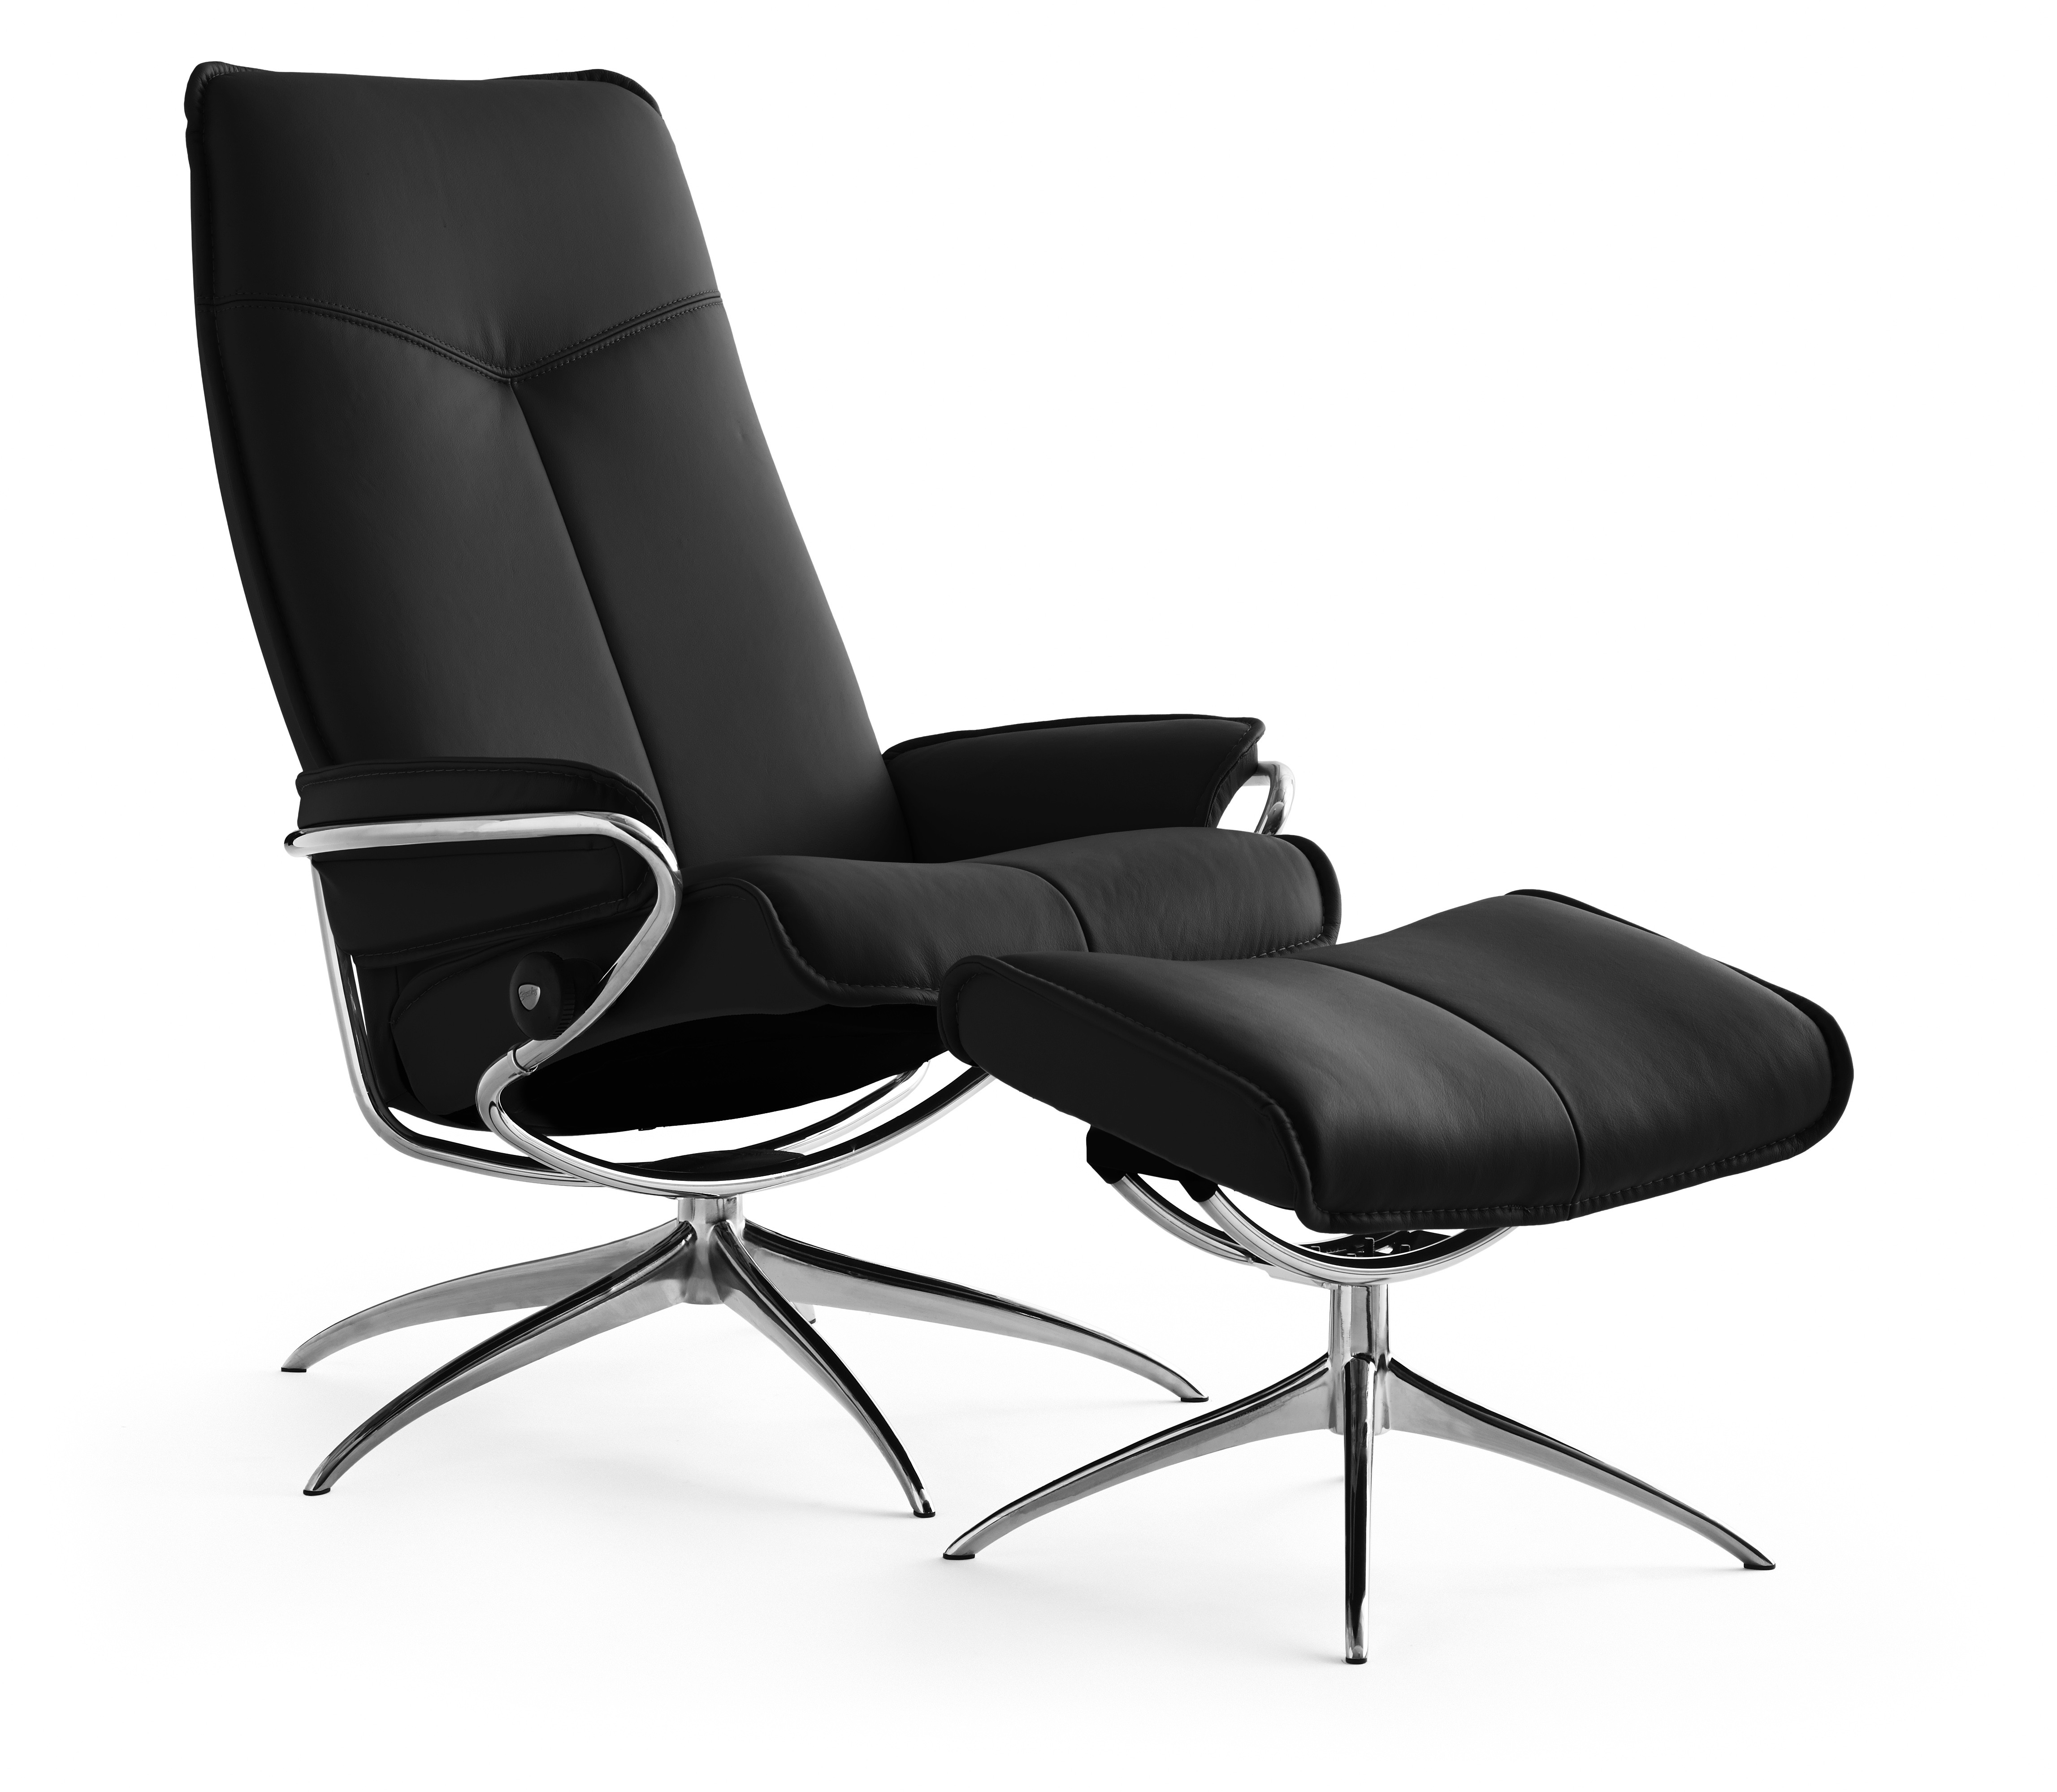 Stressless-world.com Ekornes Stressless City High Back Recliner With Ottoman